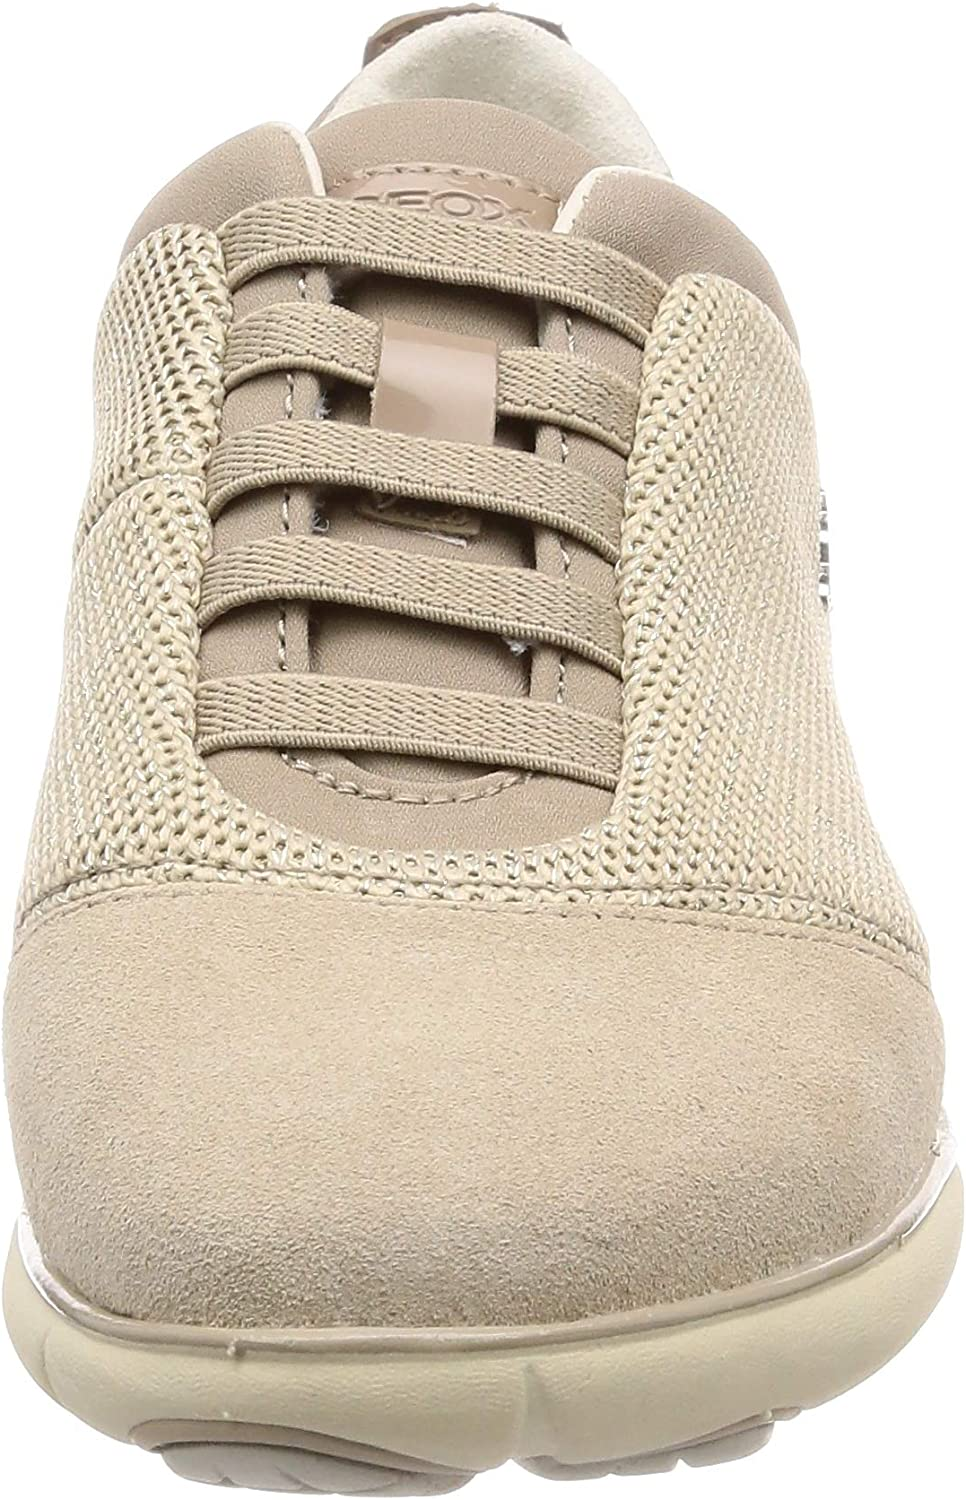 Geox Women's Low-Top Sneakers Beige Beige Cream C0423